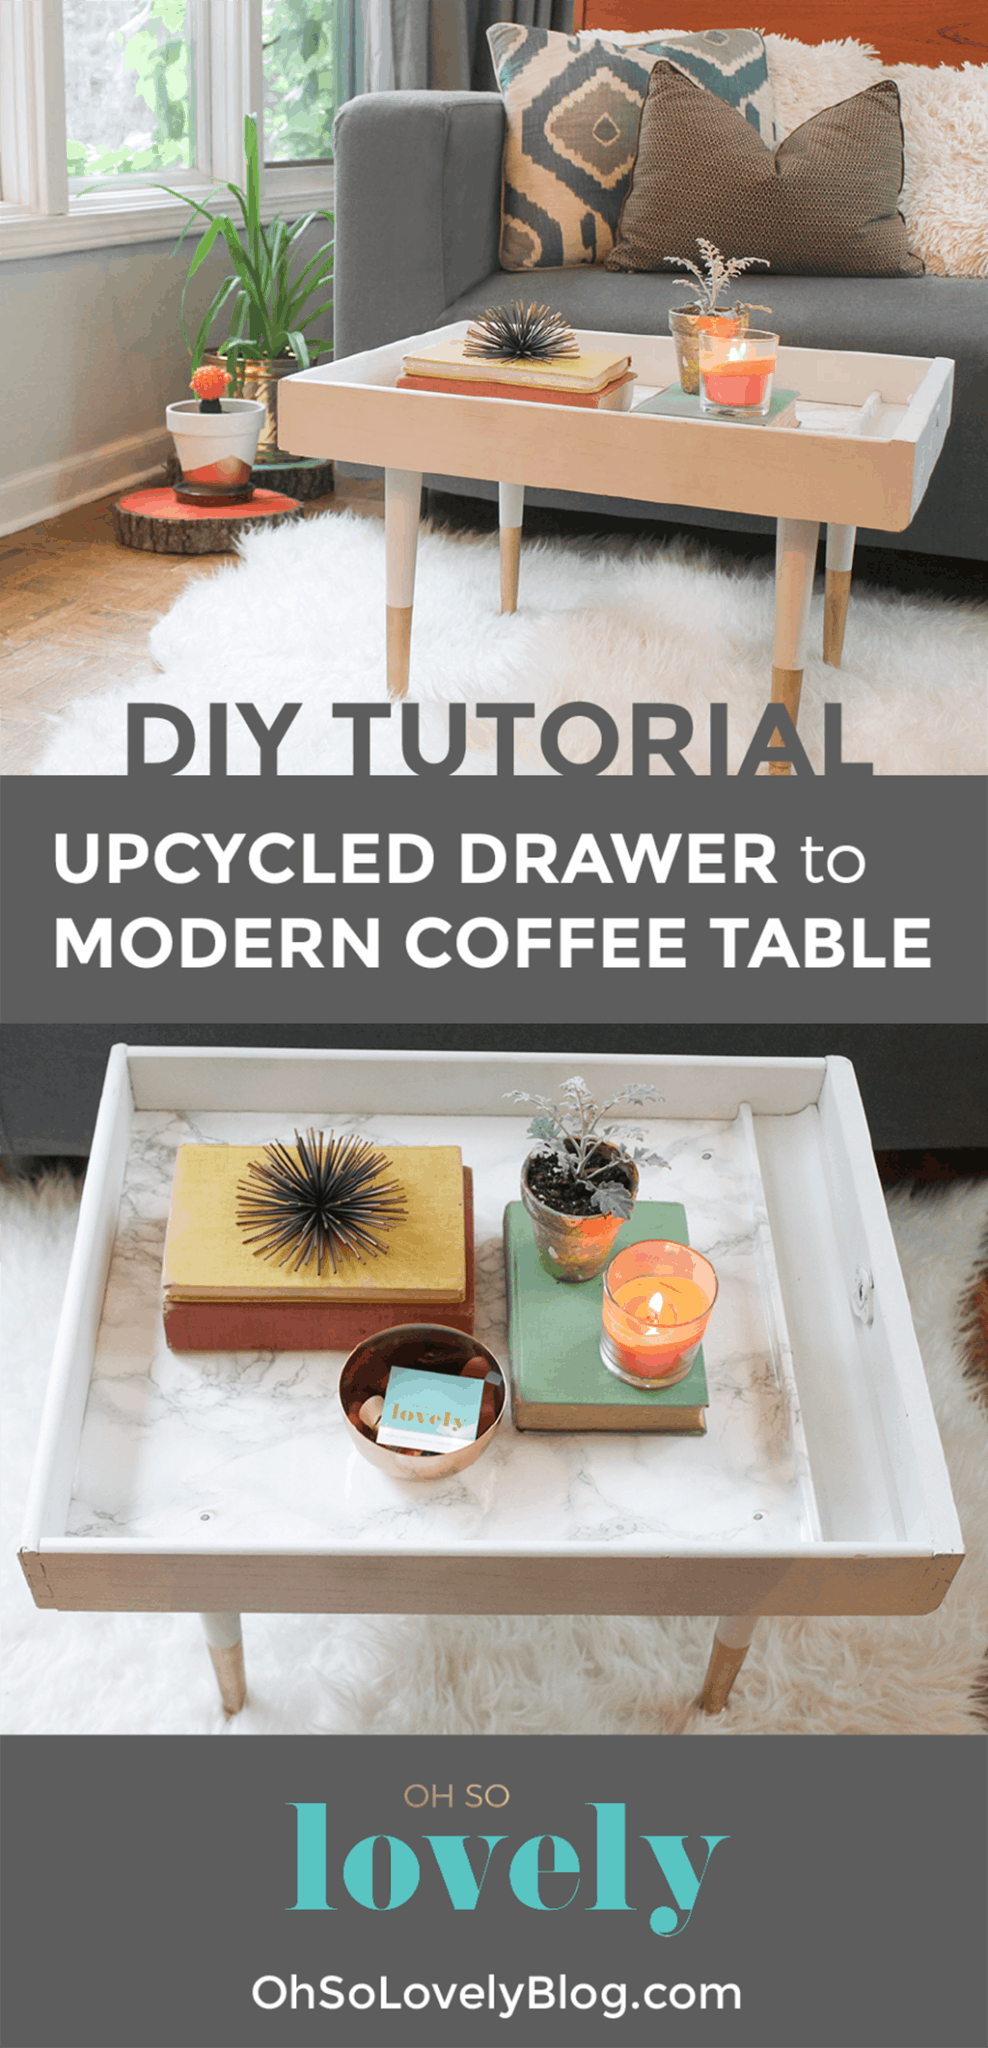 DIY Upcycled Drawer to Coffee Table Tutorial